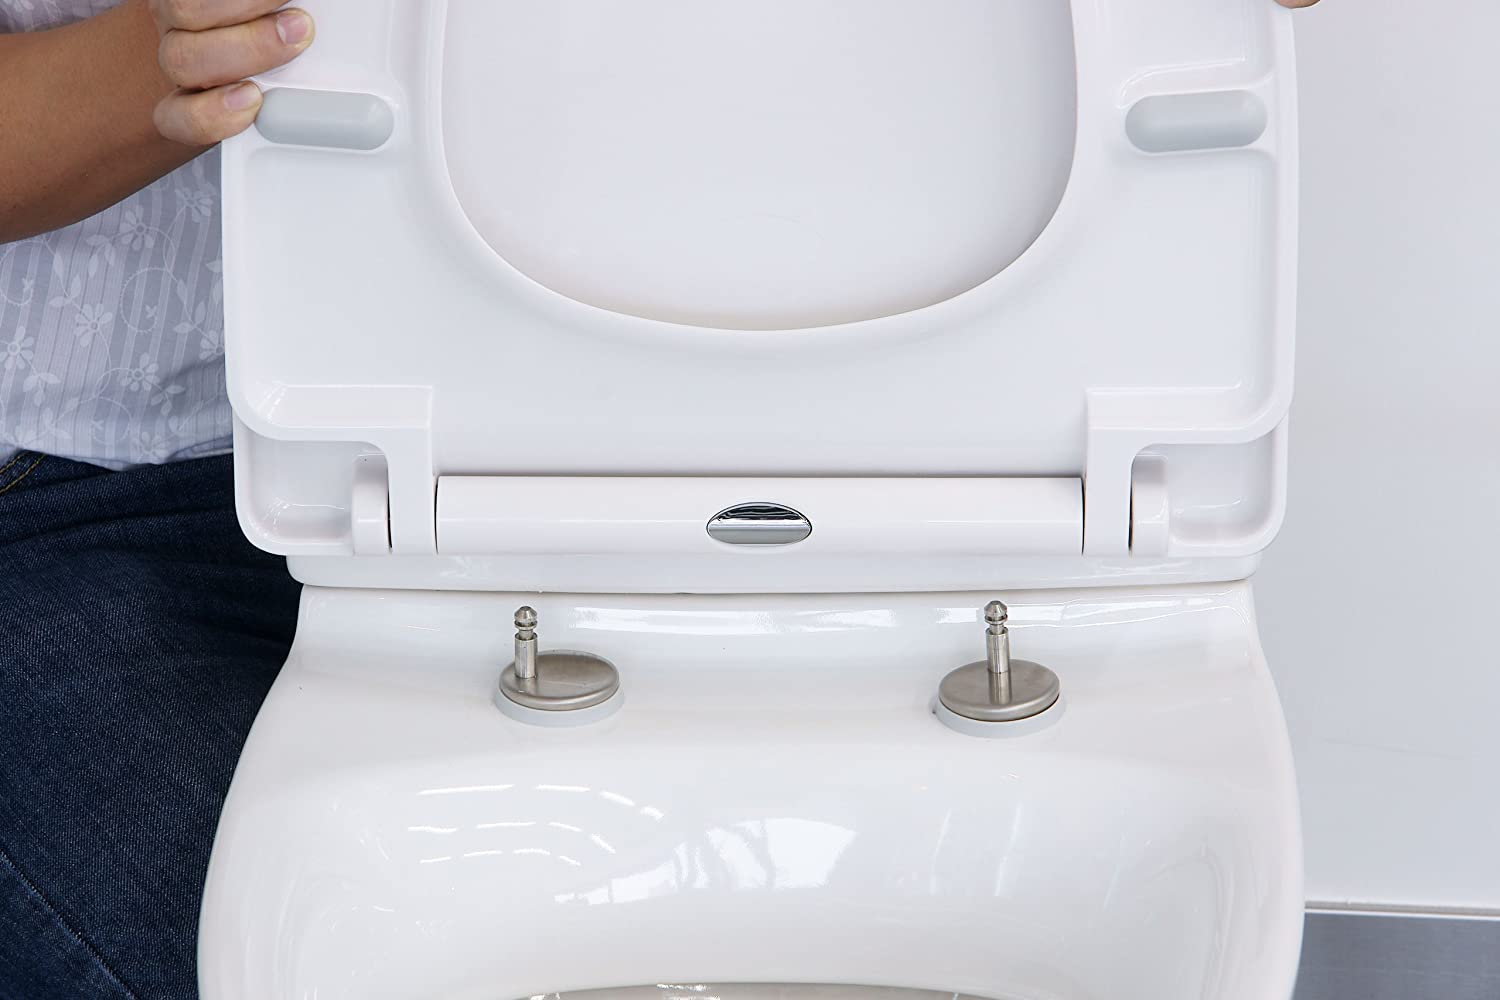 soft touch toilet seat. Euroshowers White One Seat Soft Close Toilet With Top Fix Blind Hole  Fittings And ONE BUTTON Quick Release Amazon Co Uk DIY Tools